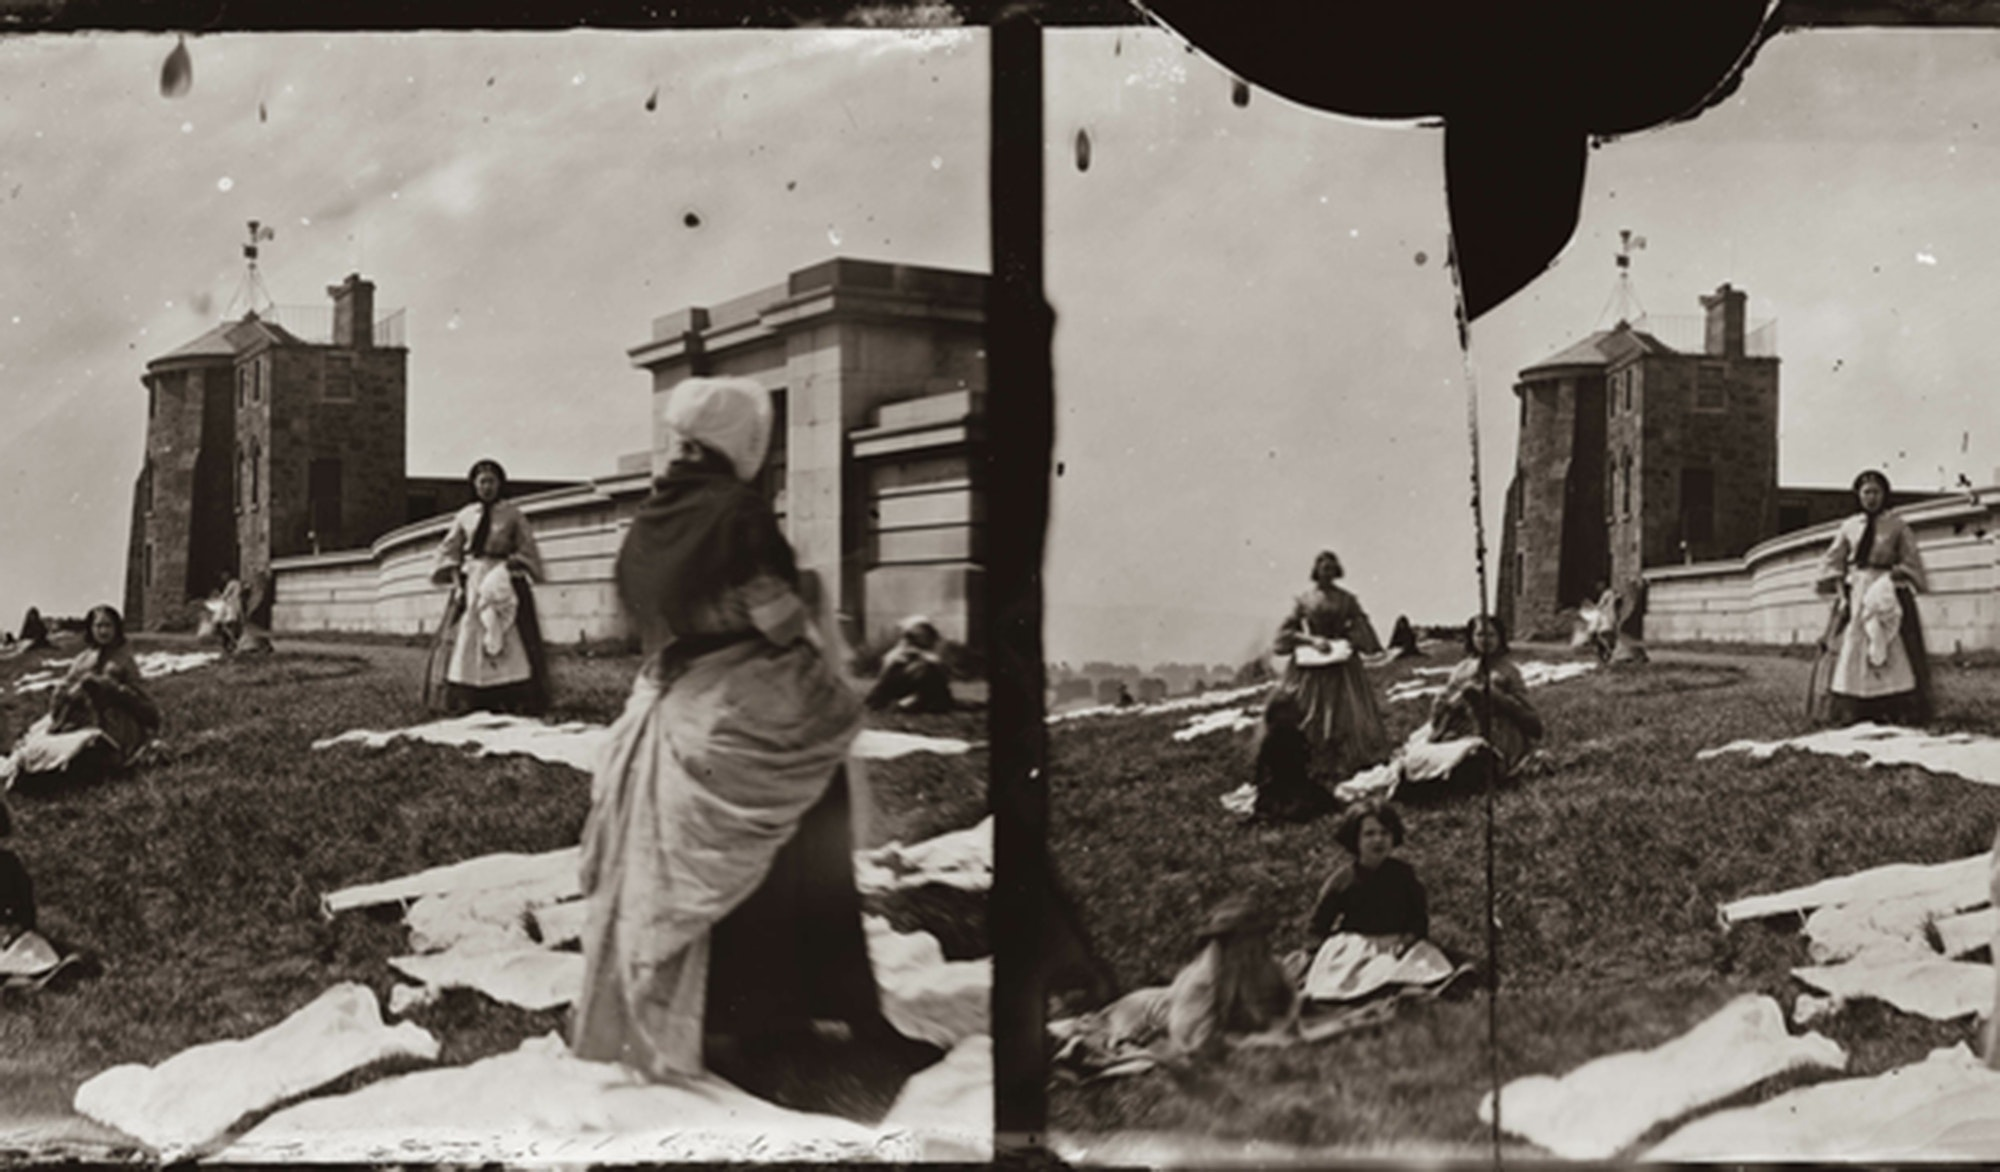 Washerwomen On Calton Hill, Thomas Begbie, 1887, c/o City of Edinburgh Council – Museums and Galleries www.capitalcollections.org.uk